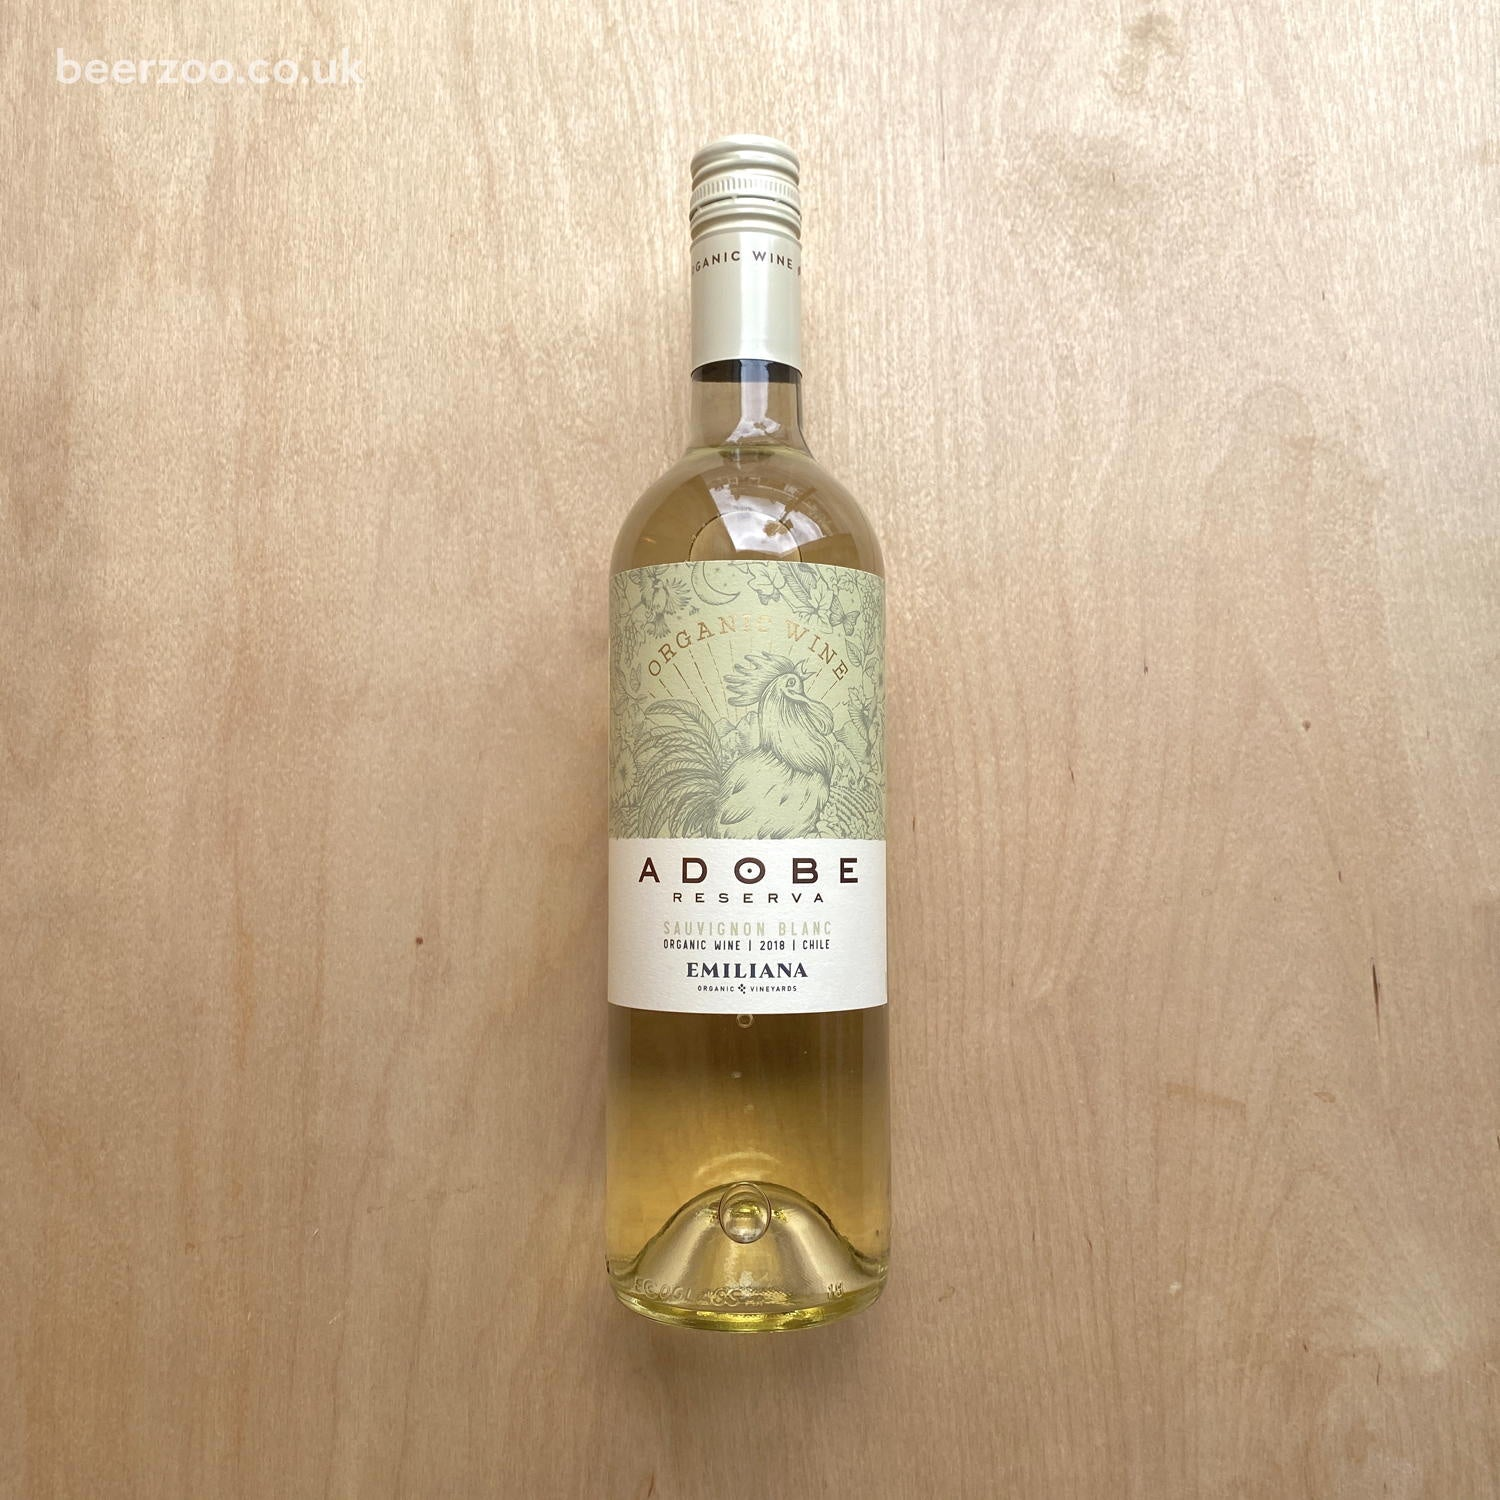 Adobe - Sauvignon Blanc 12% (750ml)